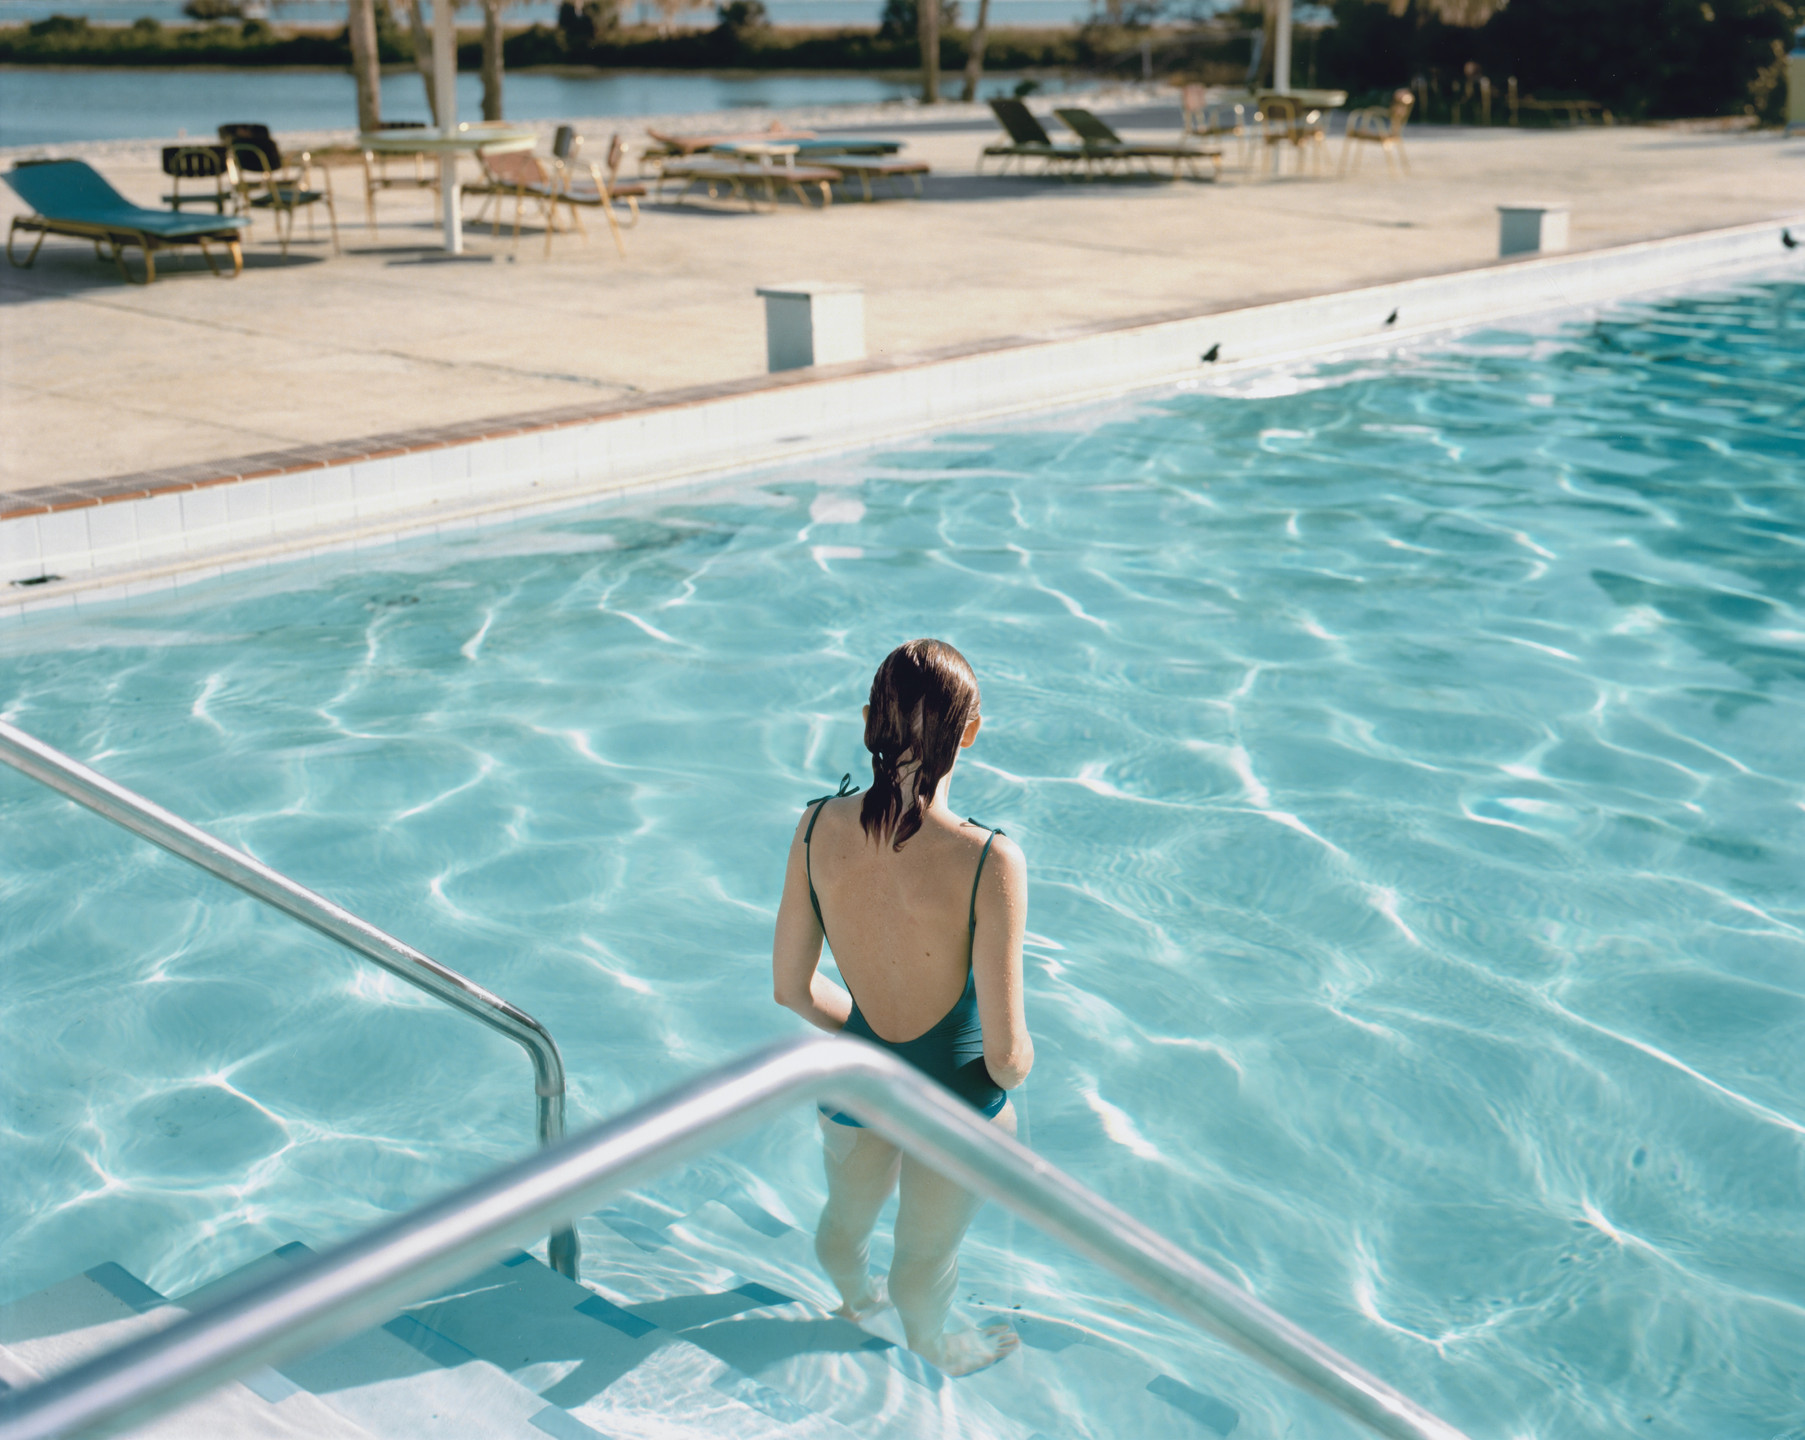 Stephen Shore. Ginger Shore, Causeway Inn, Tampa, Florida, November 17, 1977. 1977